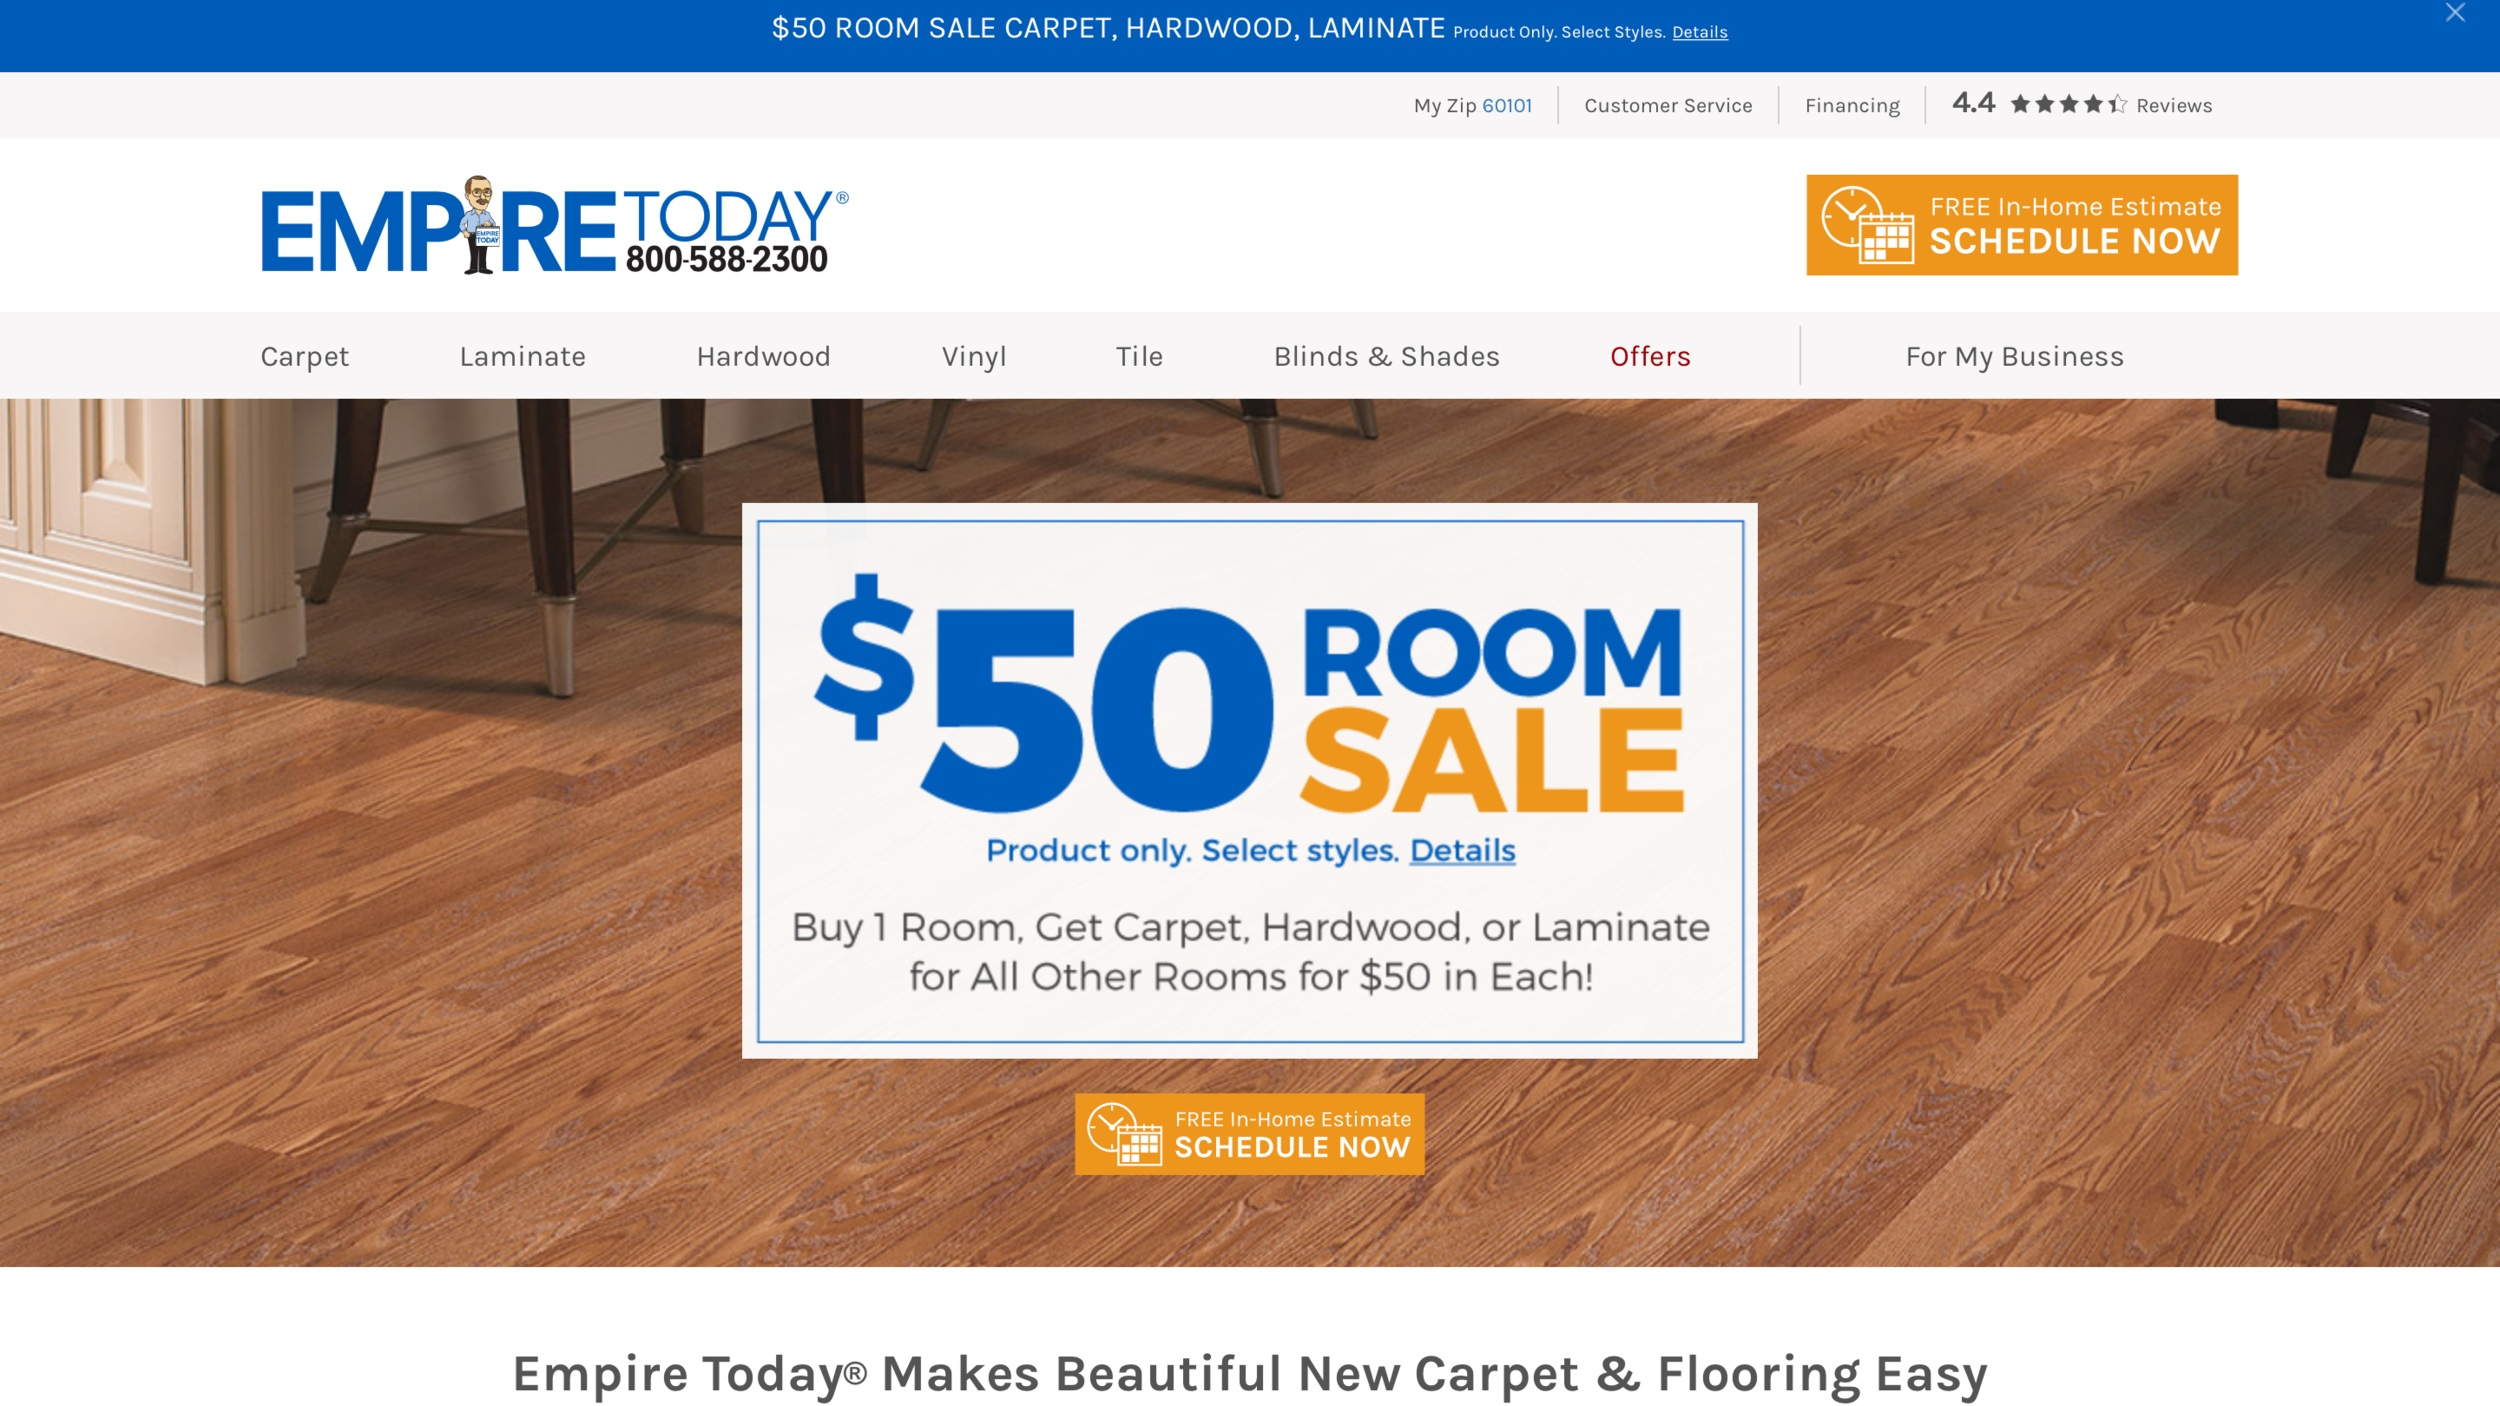 Web development and creative content creation for the home decor, home services and DIY industries. Empire Today website design and development of copy. https://www.empiretoday.com/?ver=c